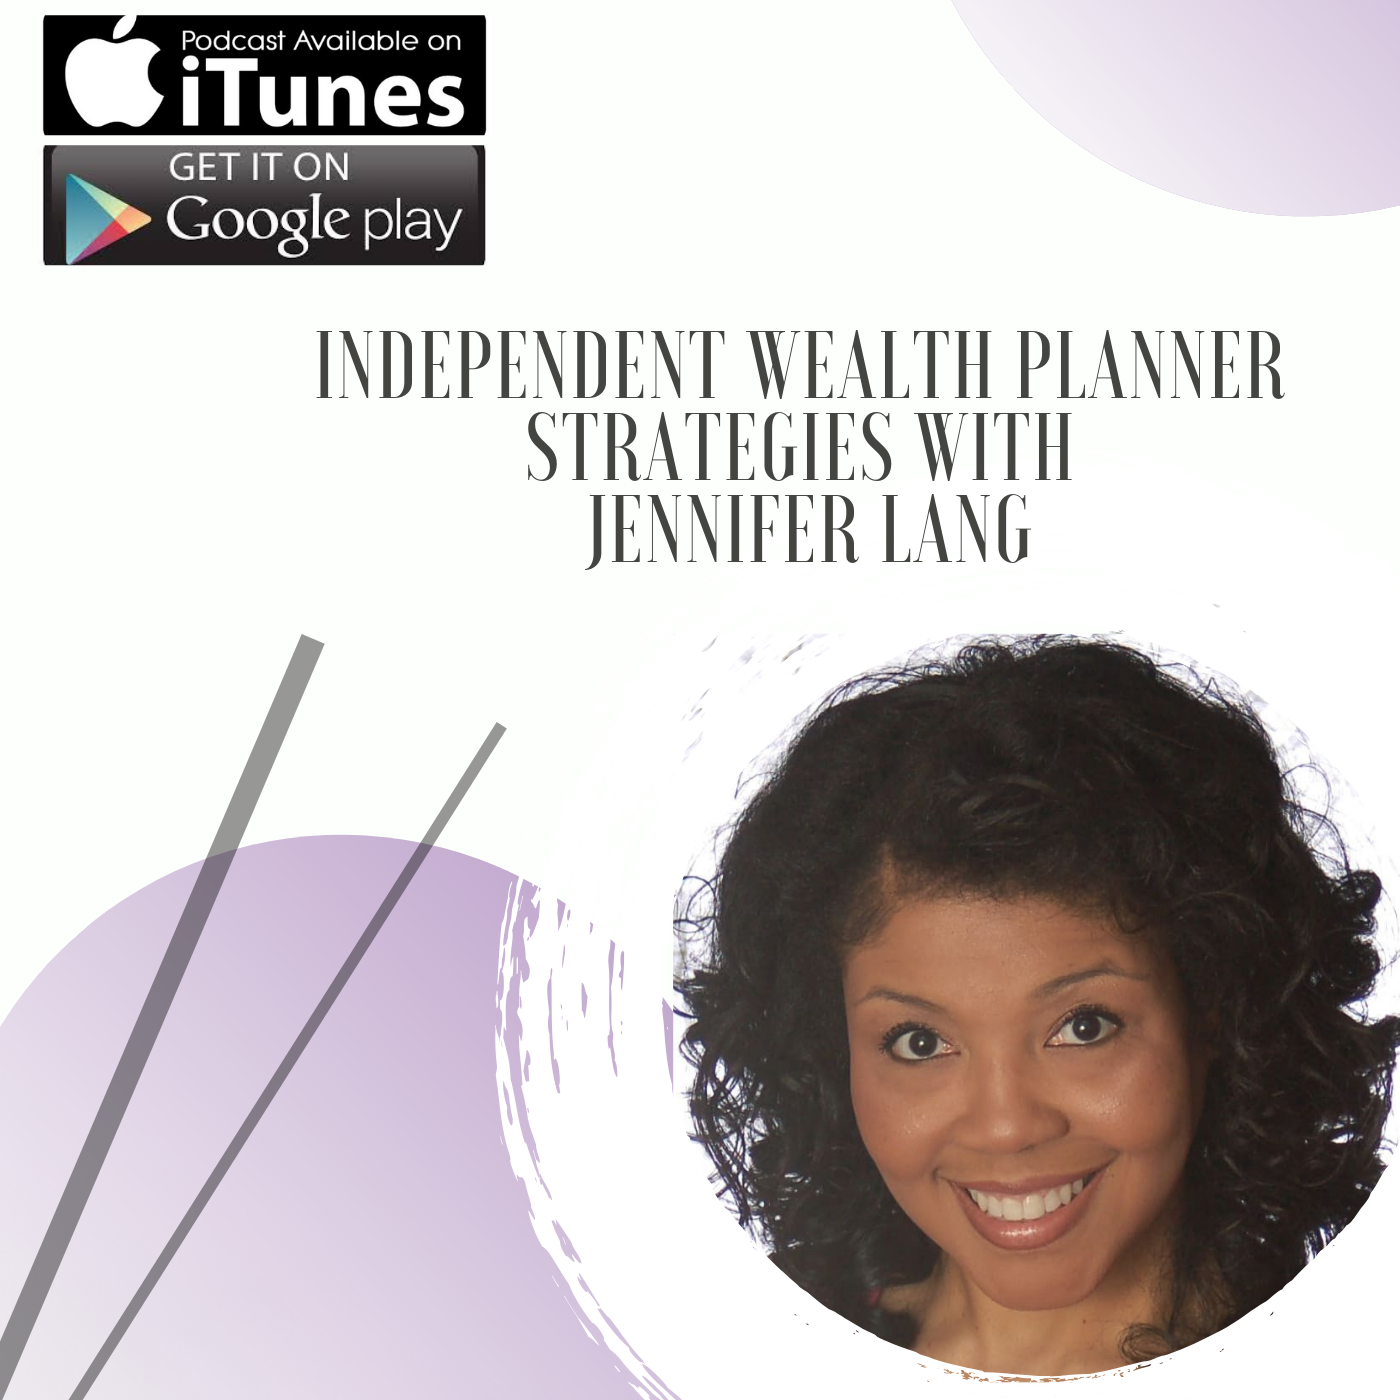 Independent Wealth Planner Strategies with Jennifer Lang.